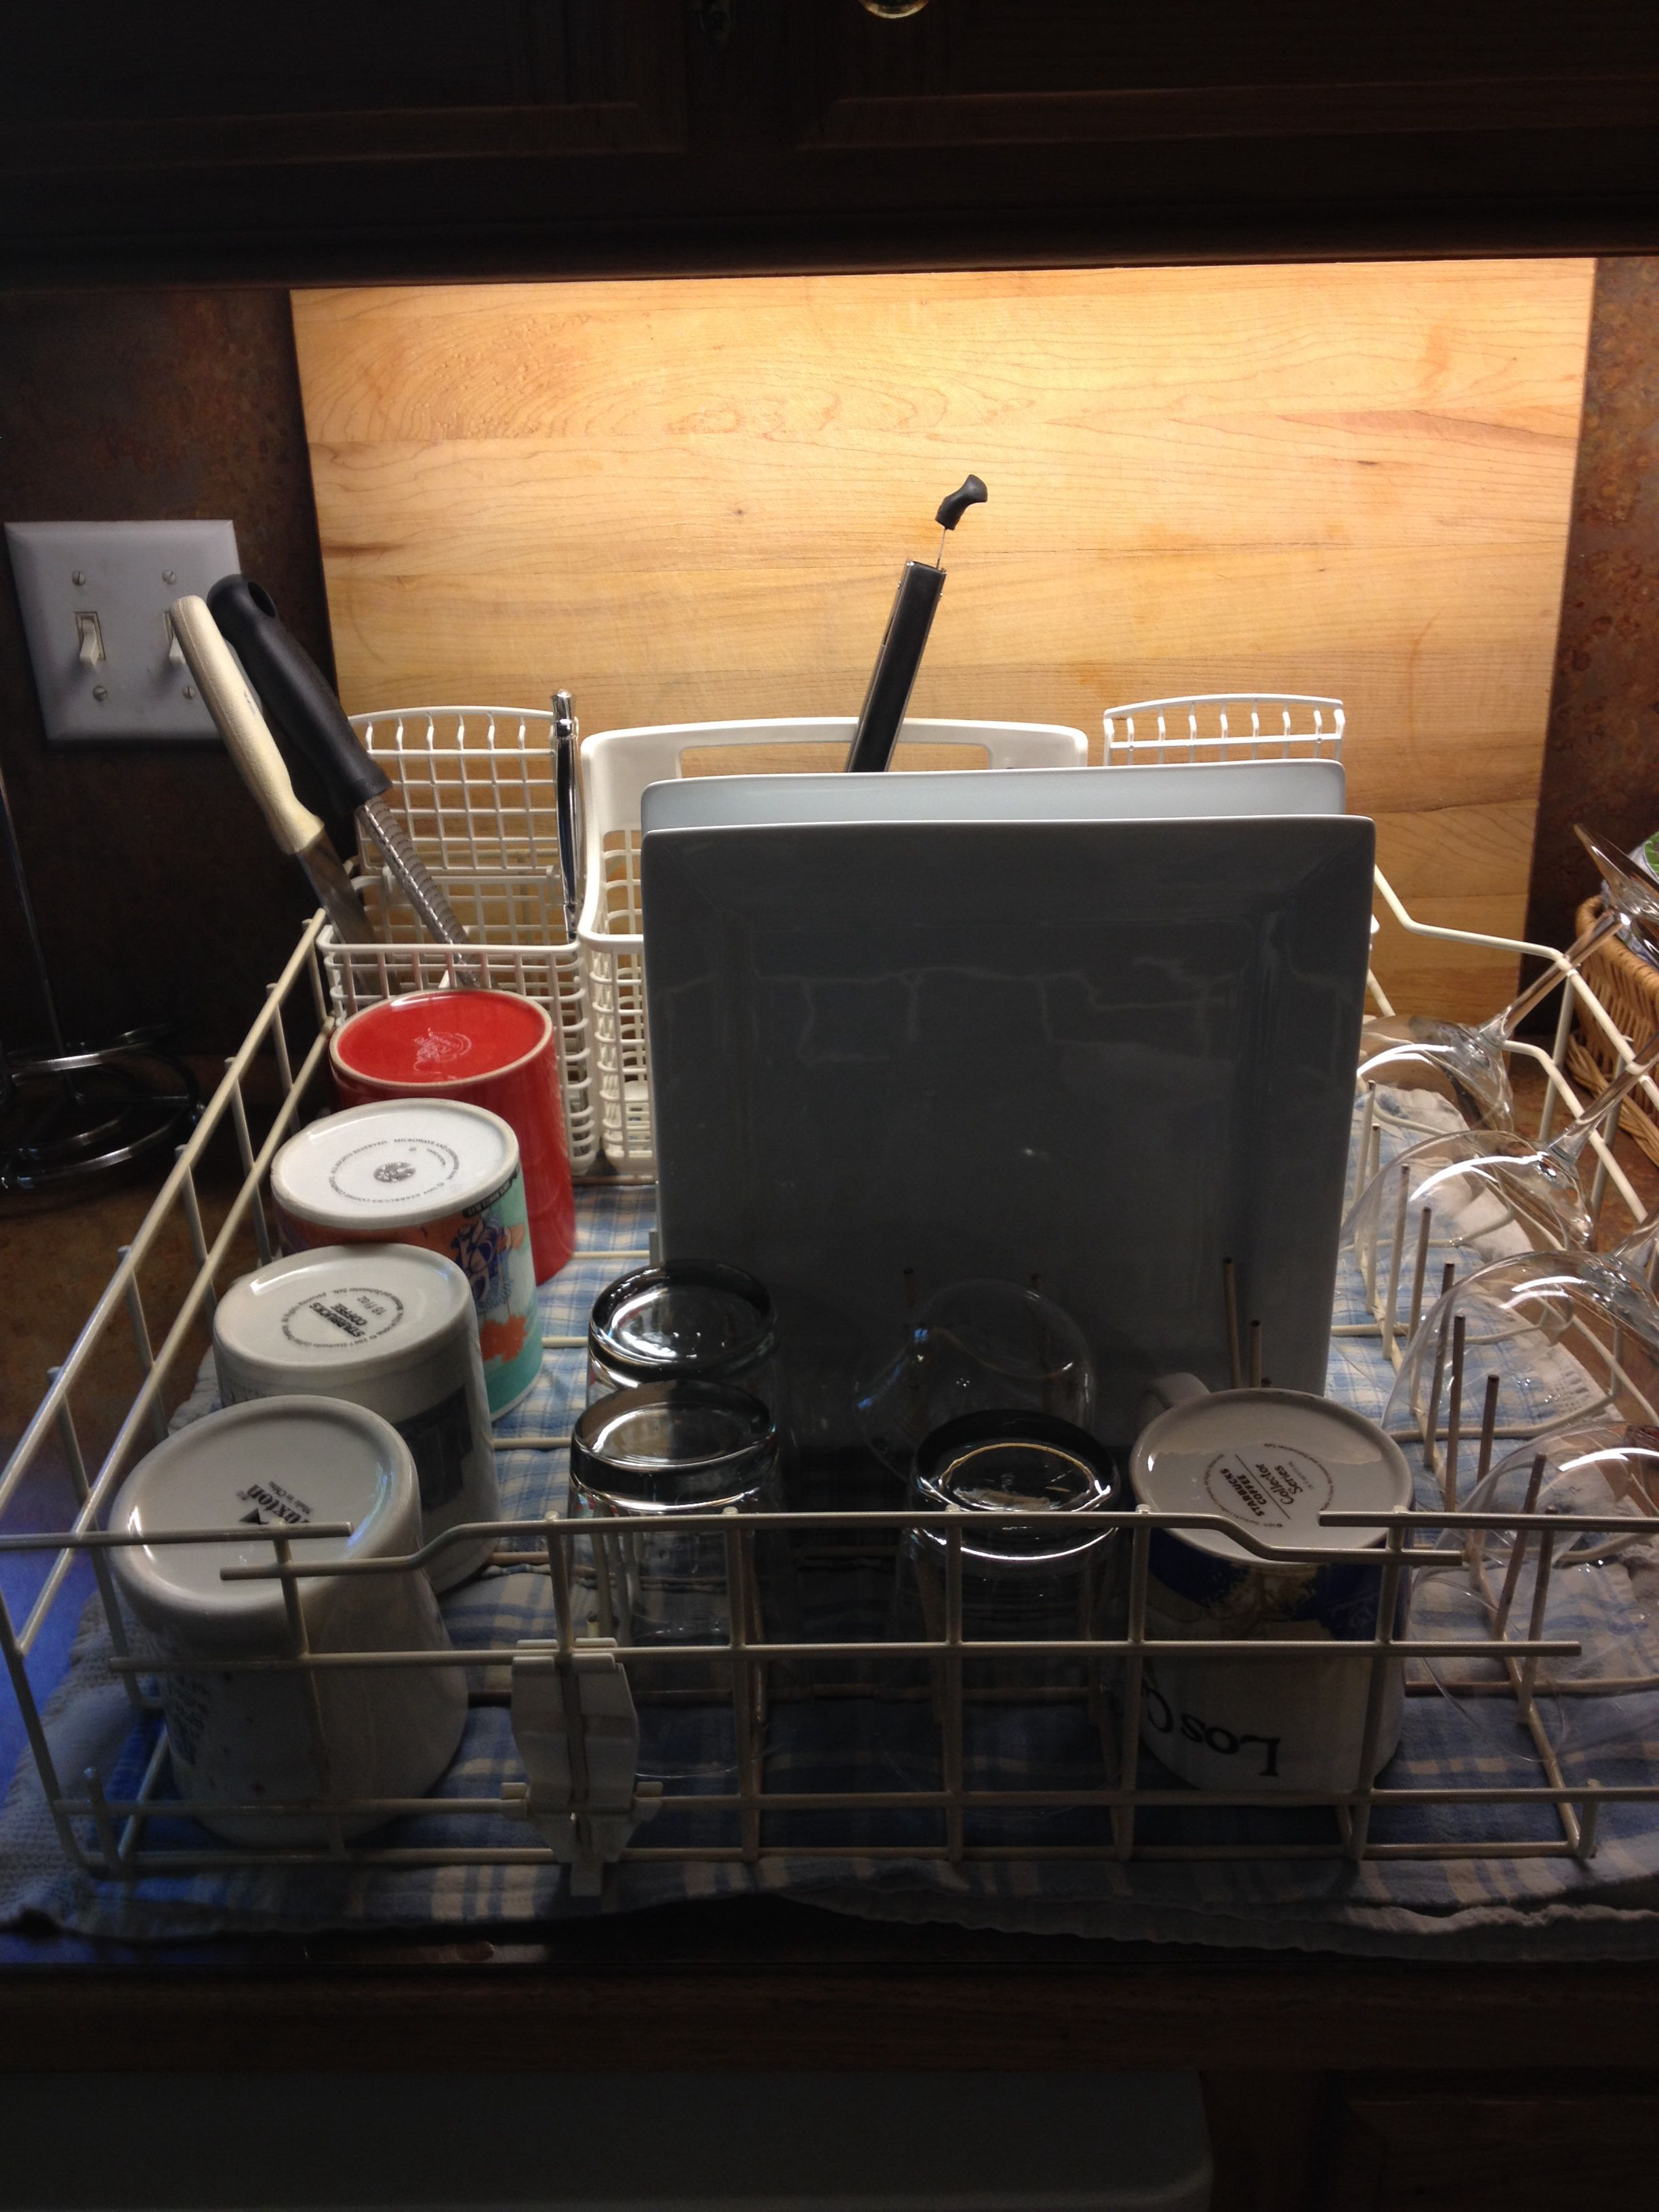 Old Dishwasher Die Repurpose The Bottom Rack Into A Jumbo